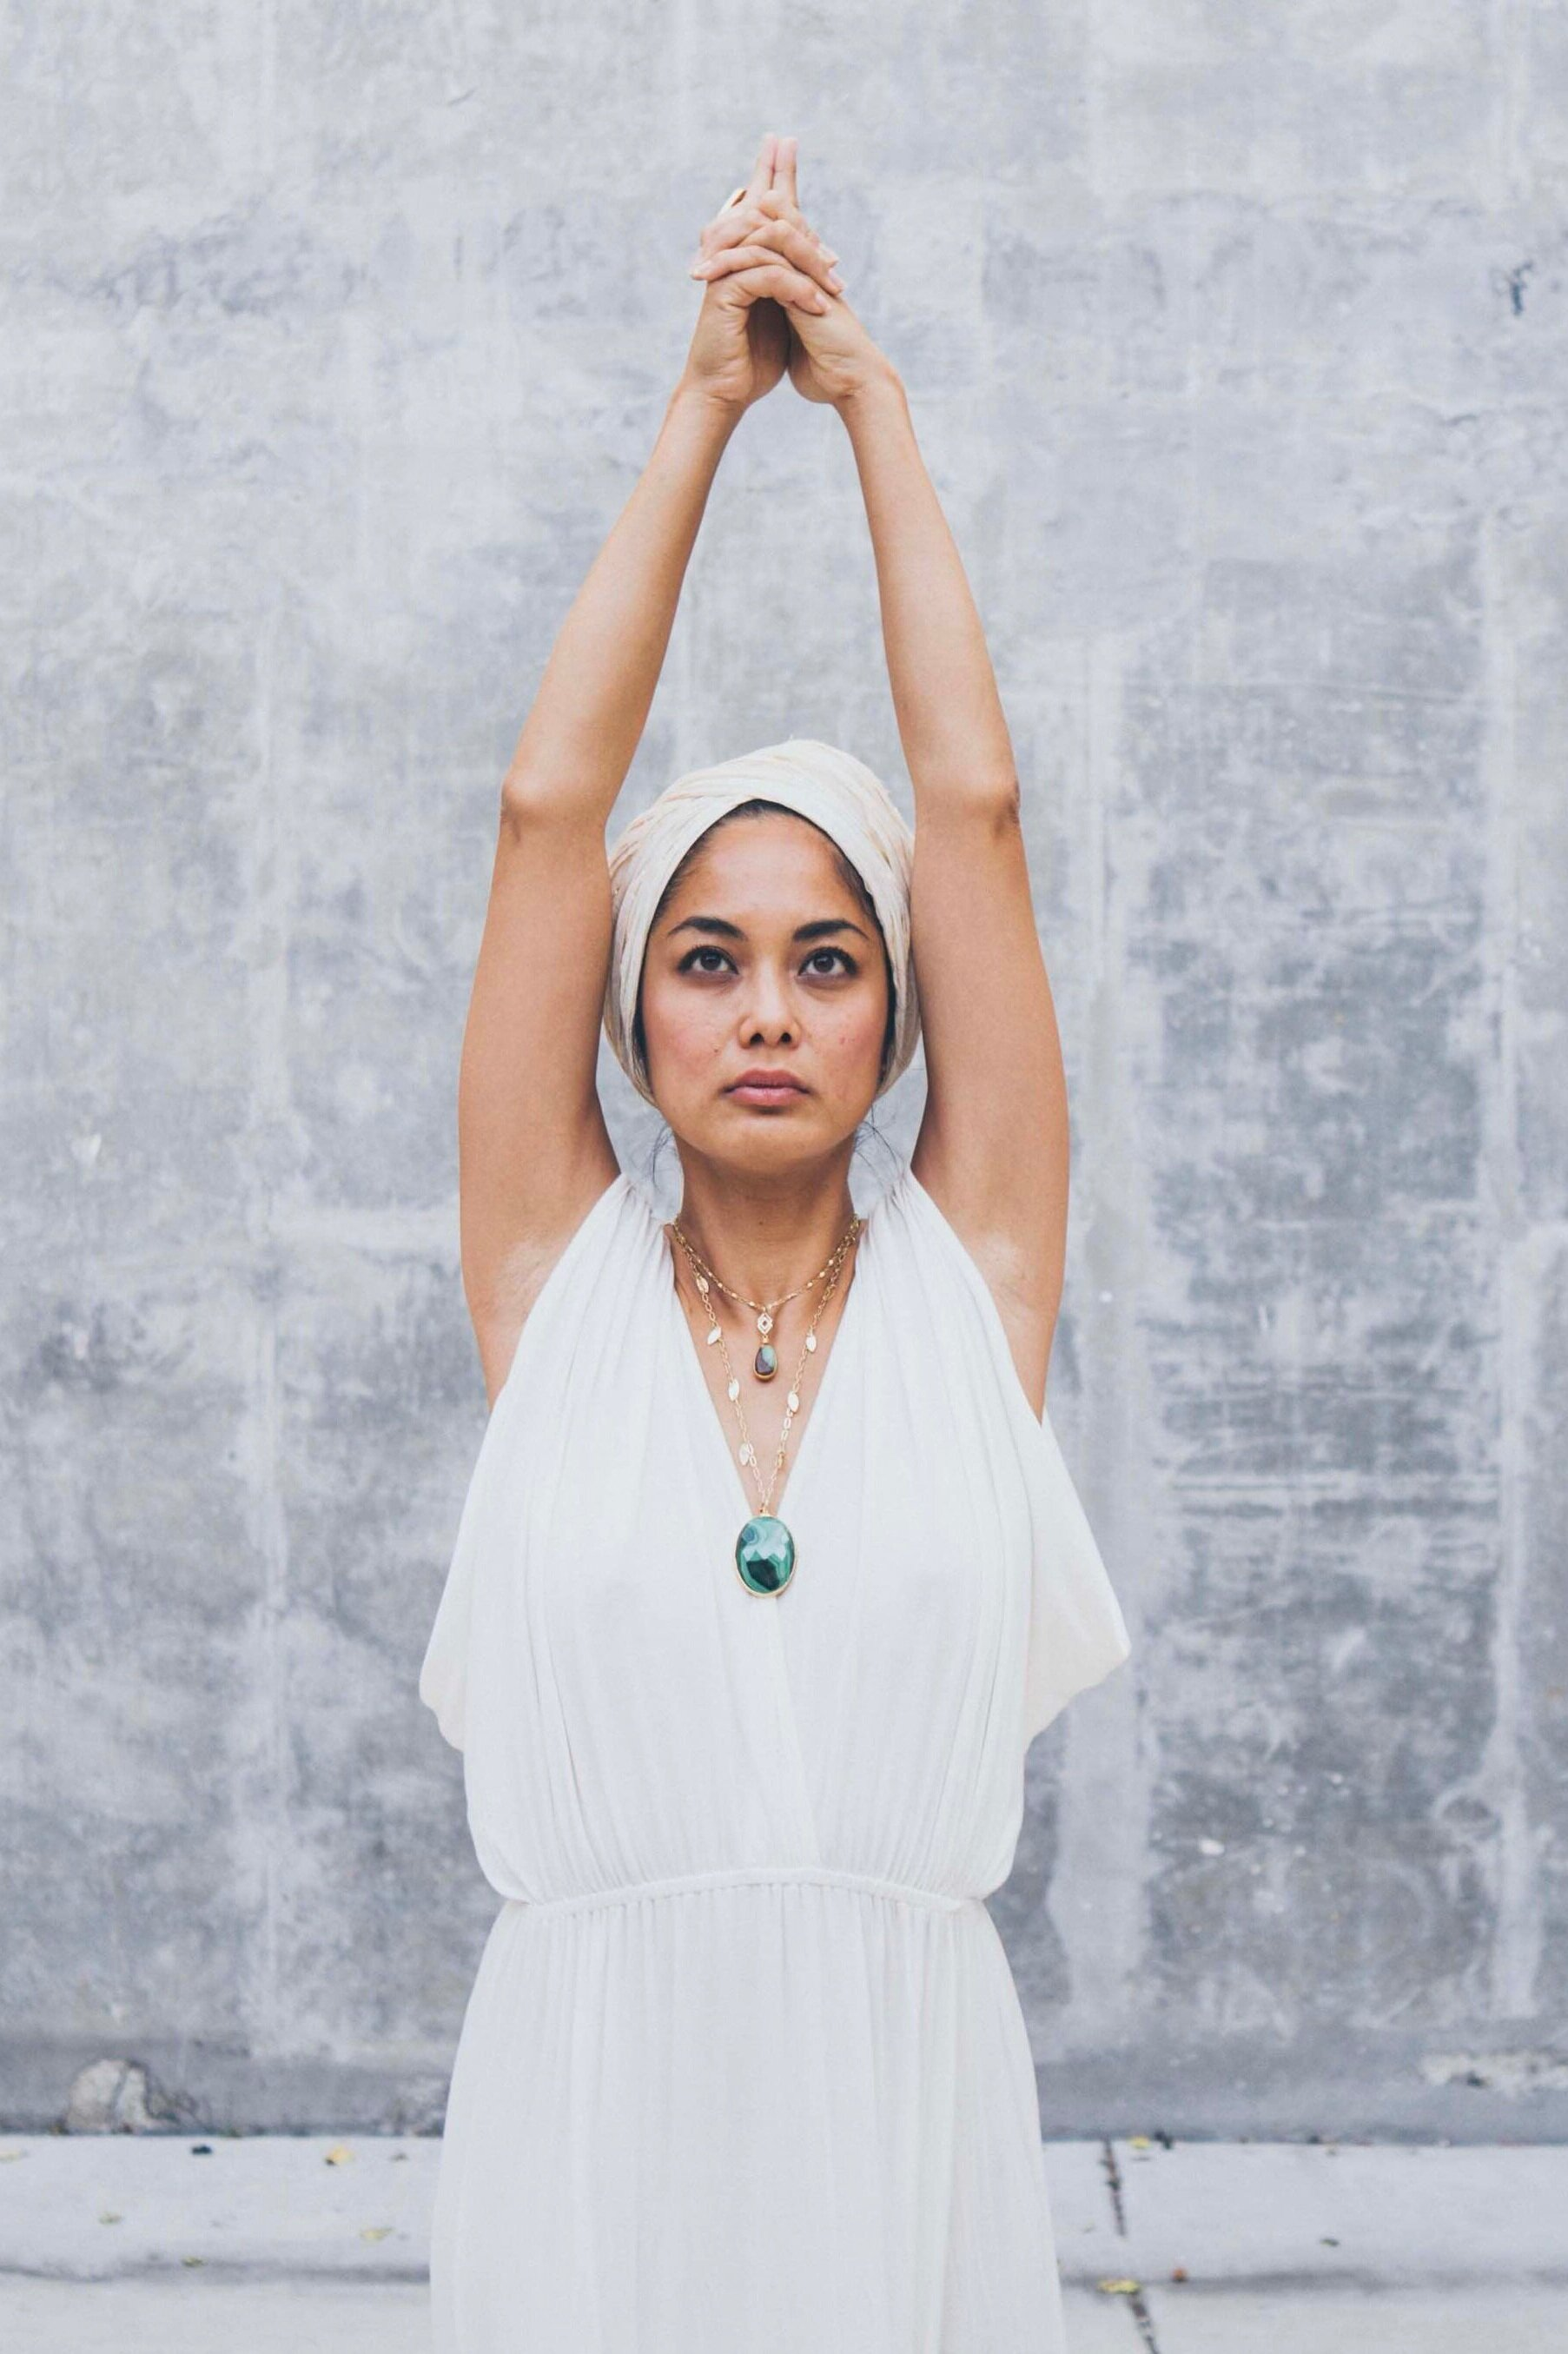 Jiwan Dev Kaur - Jiwan Dev utilizes kundalini yoga to push the boundaries on everyday living by raising consciousness on interactions when it comes to work, relationships, and everyday living. She believes radical truth will set our society free and lead us down the path of divine community and love. She first found kundalini yoga in 2003 at Golden Bridge in Hollywood, and completed the KRI 200-hour teacher training at Golden Bridge in New York under the guidance of Gurmukh and Gurushabd in 2016. Her calling is to empower her students to find their inner guru. She offers kundalini yoga, meditation, sound healing, ceremonies, and energy healing to the LA and OC areas, NYC, and worldwide.